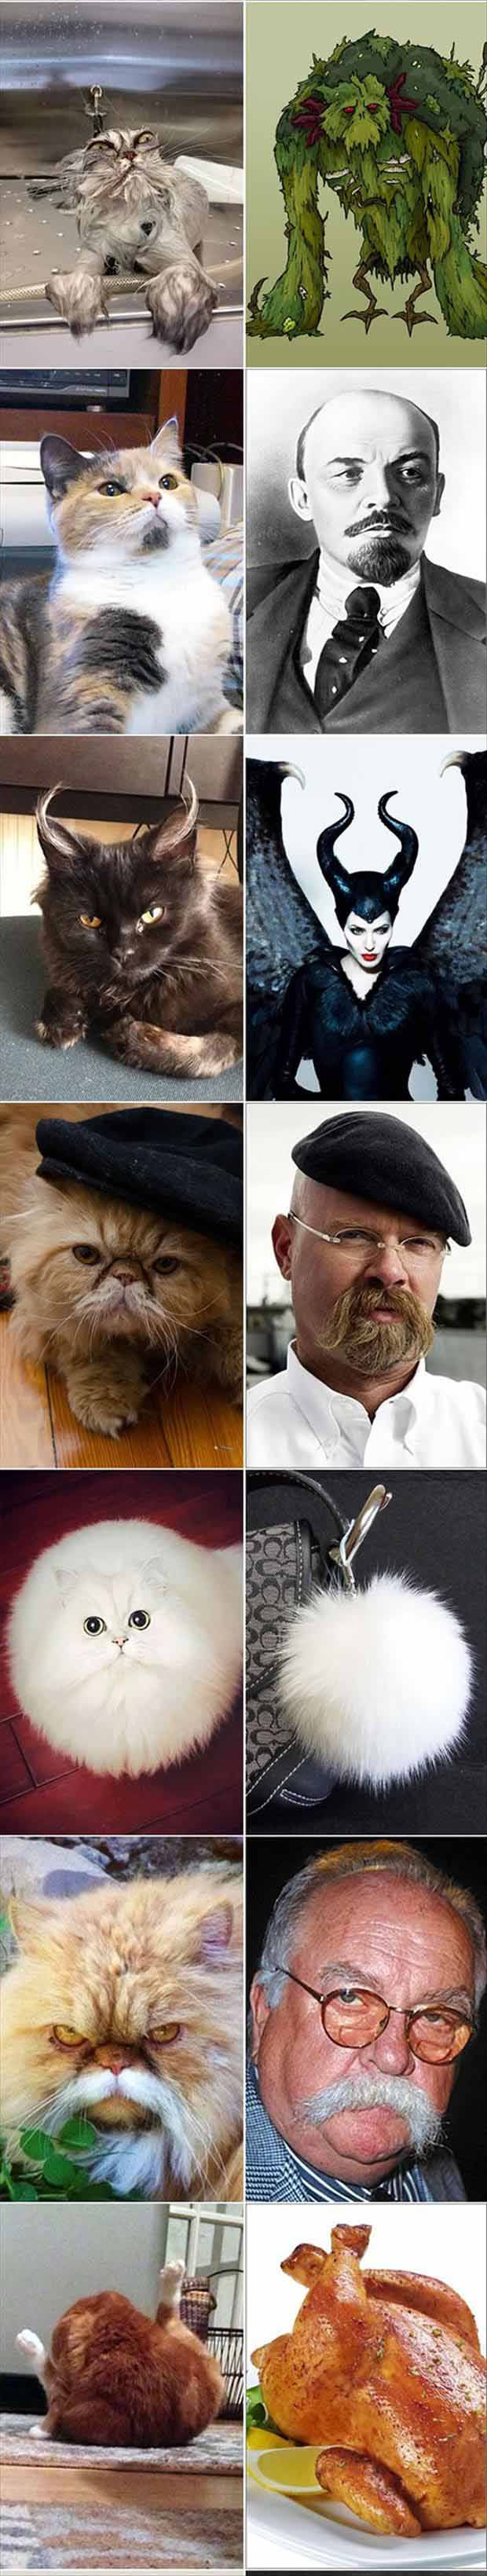 You Know You've Been On The Internet To Long When Cats Start Looking Like Everything...